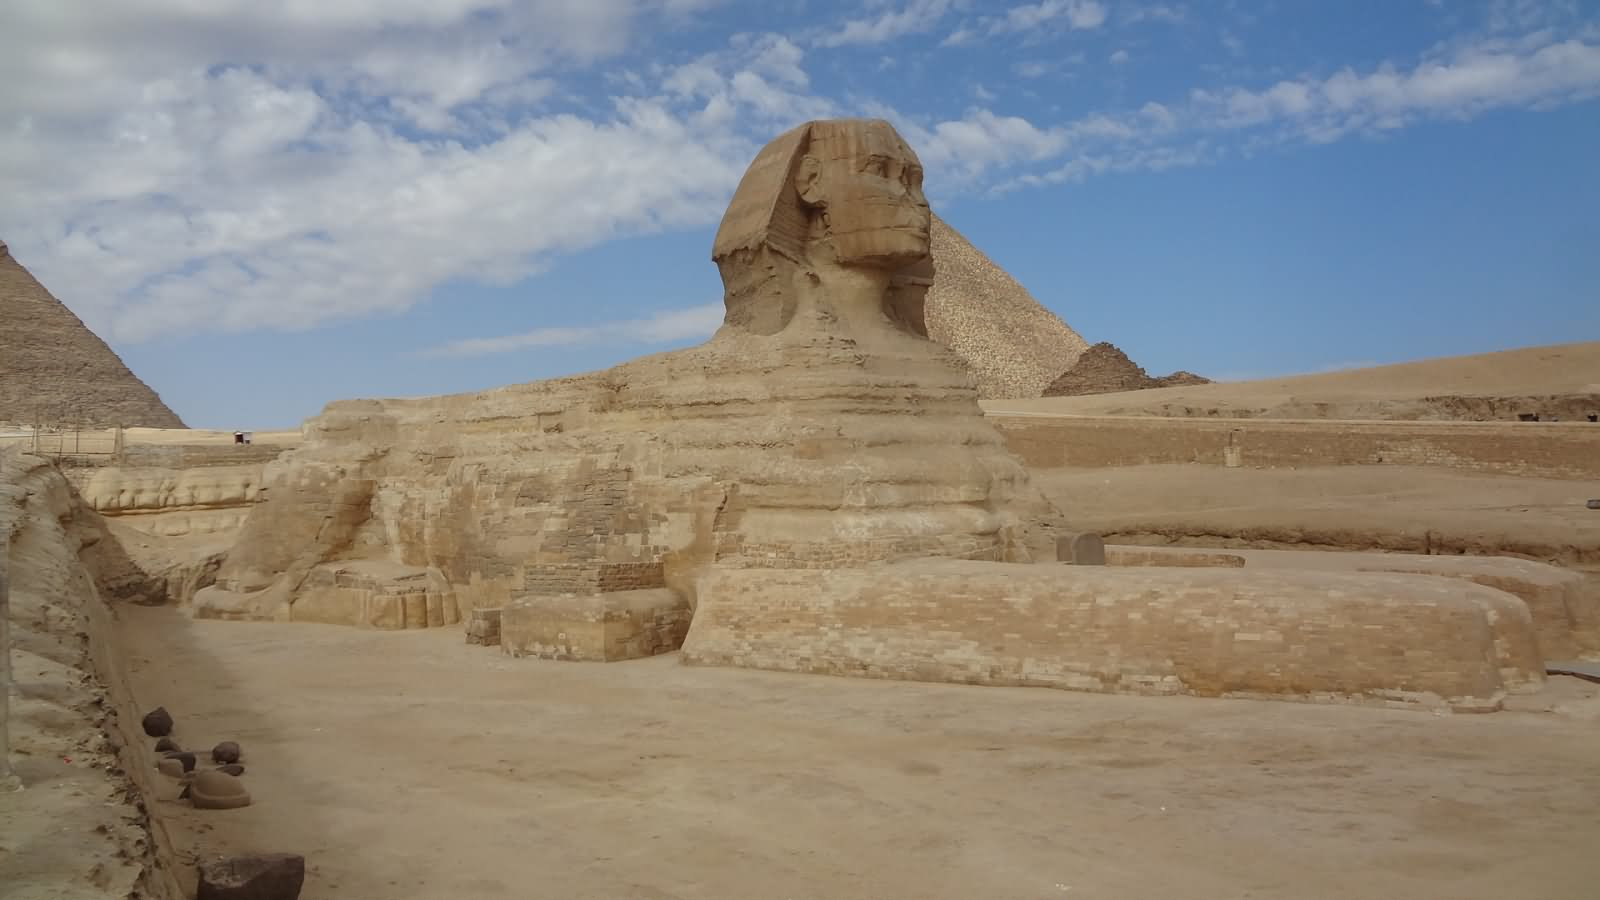 The Great Sphinx of Giza With The Pyramid Of Khufu In The Background